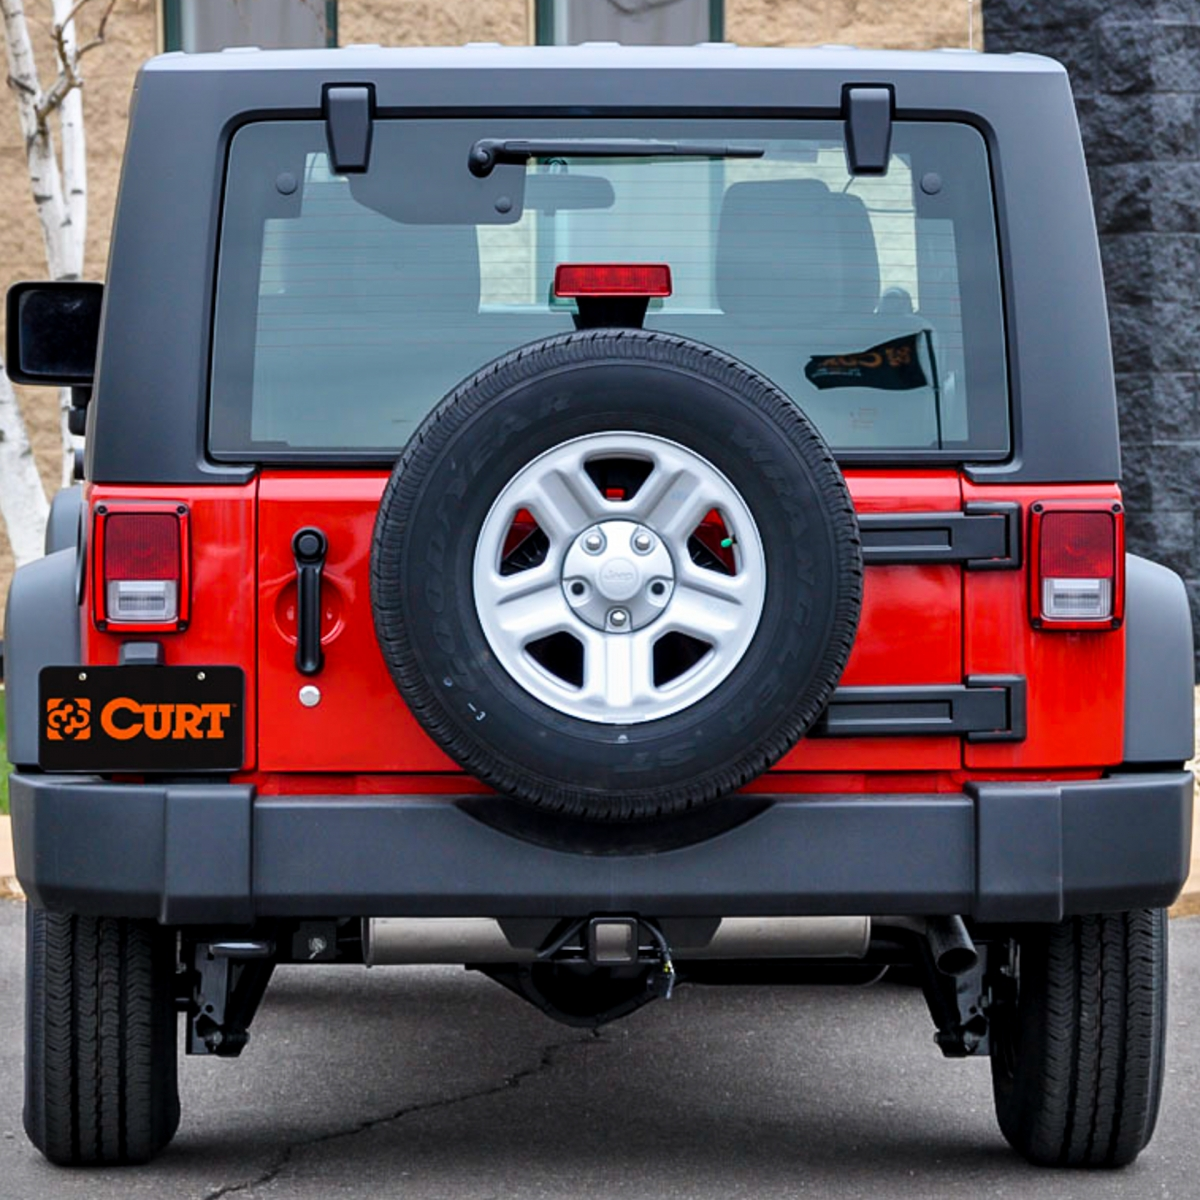 Curt.Jeep (1 of 1).jpg